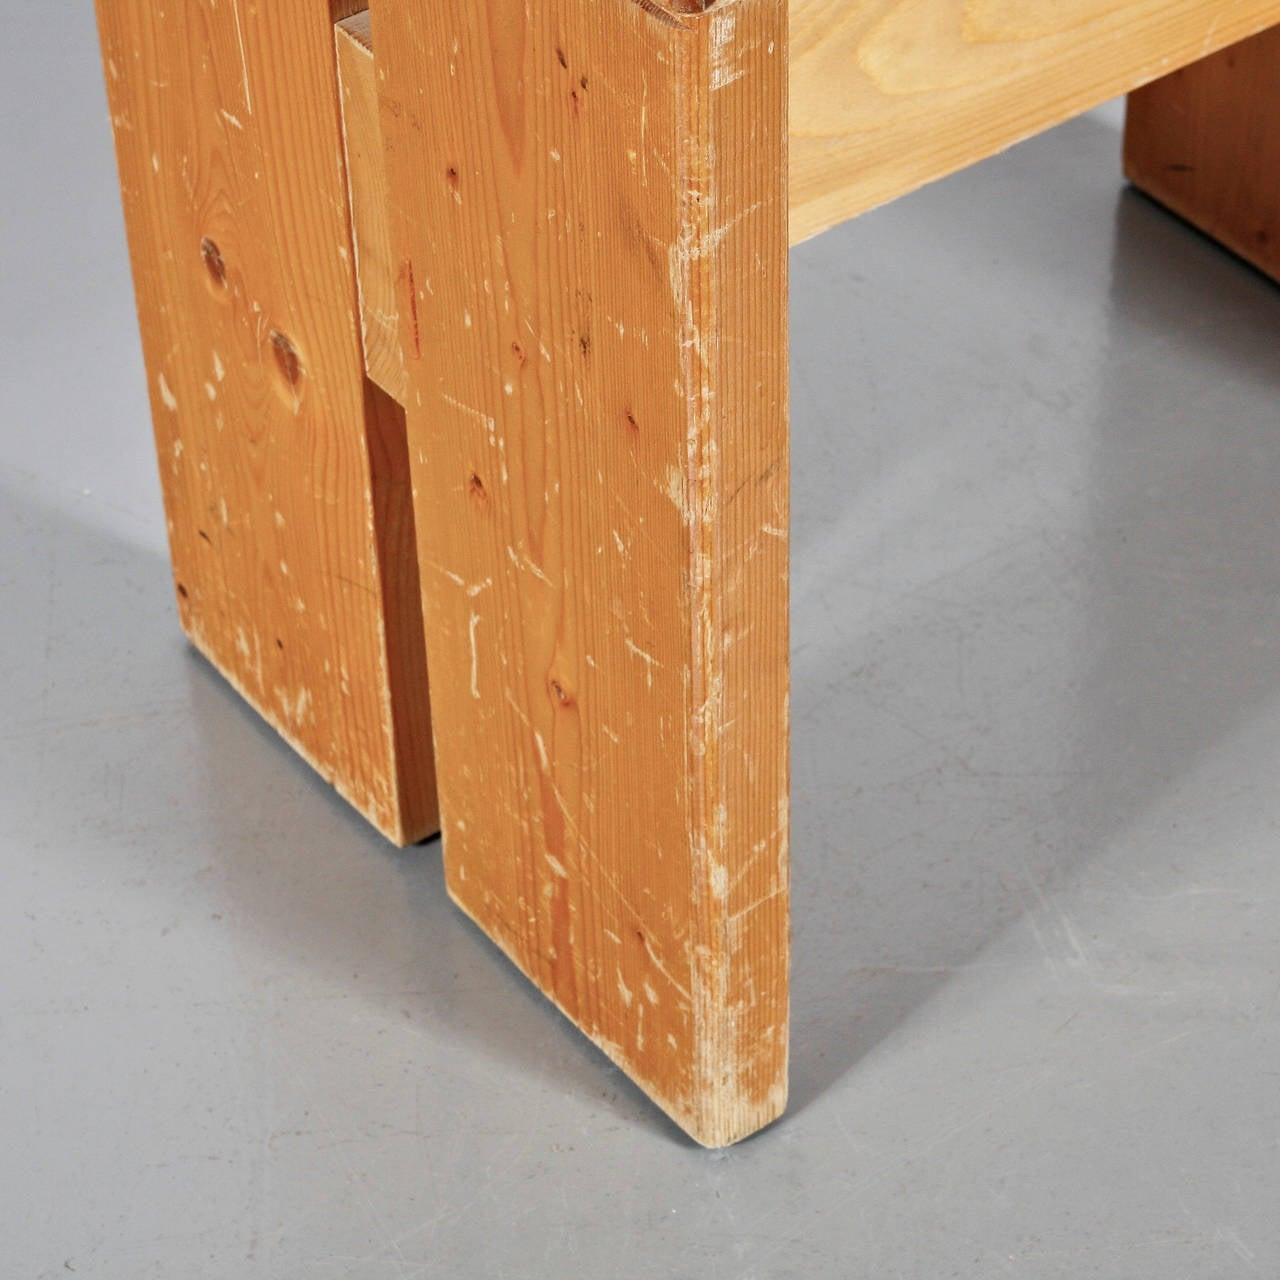 Charlotte Perriand Stool for Les Arcs 7